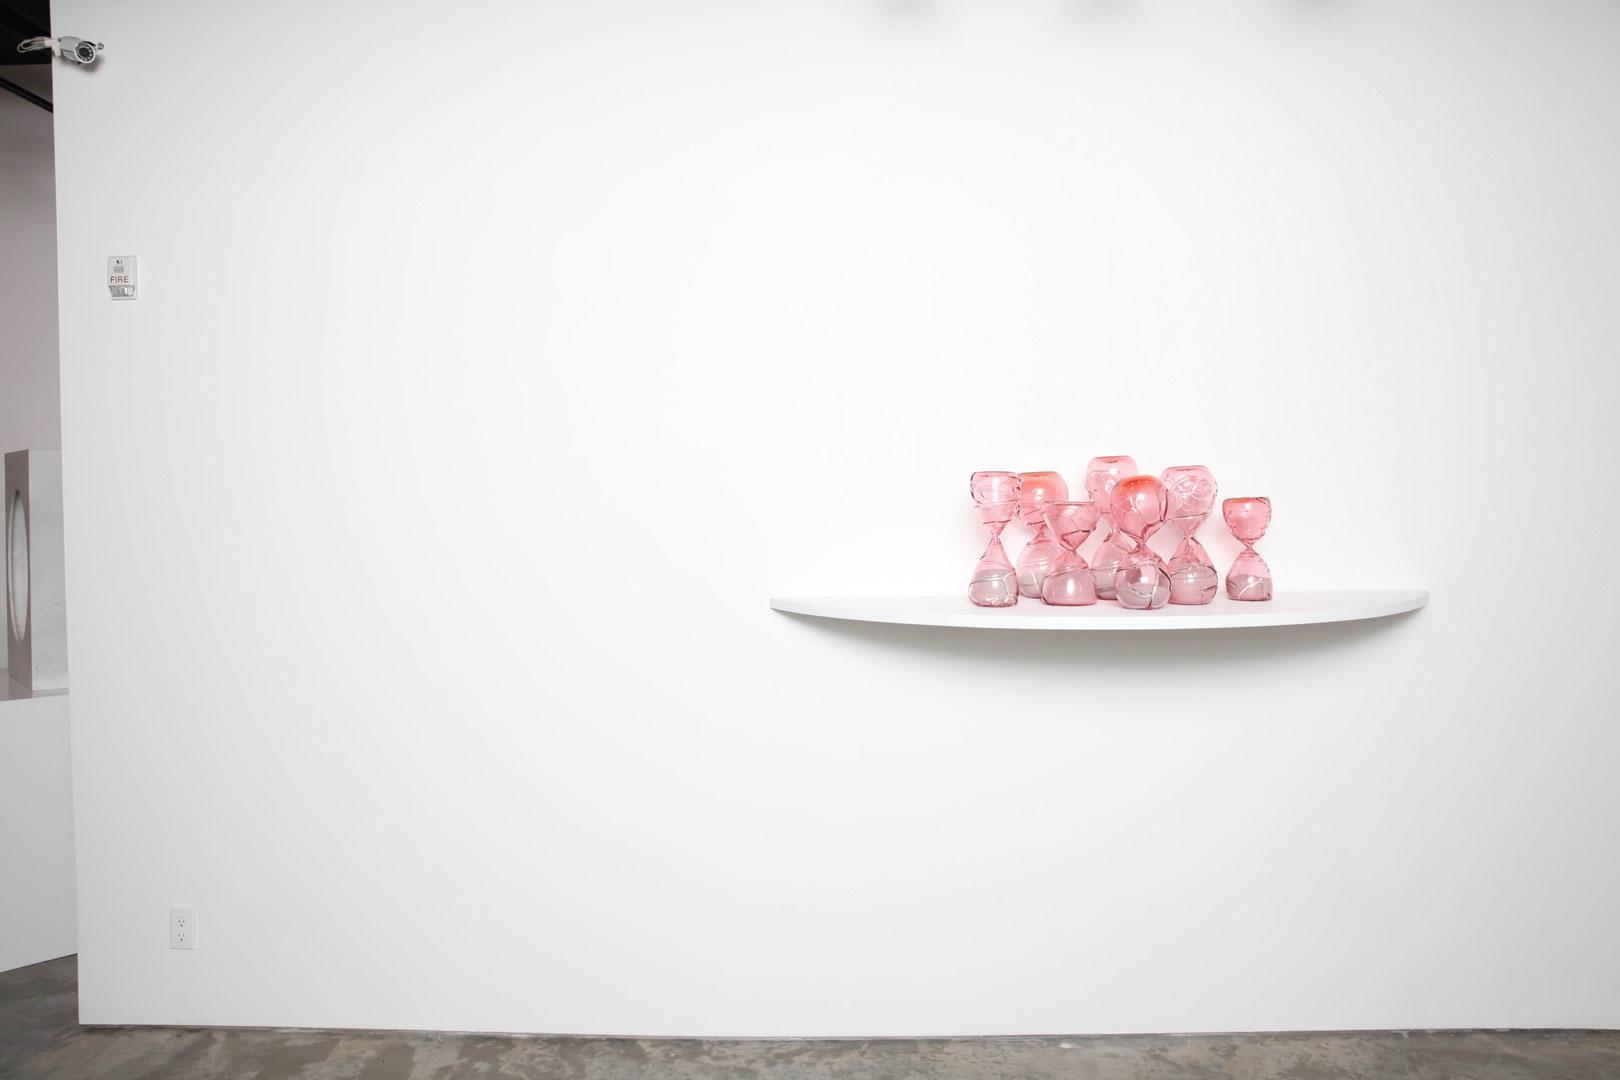 Installation art view at Garis & Hahn Gallery in New York City of glass pink hourglasses by Zoe Buckman.